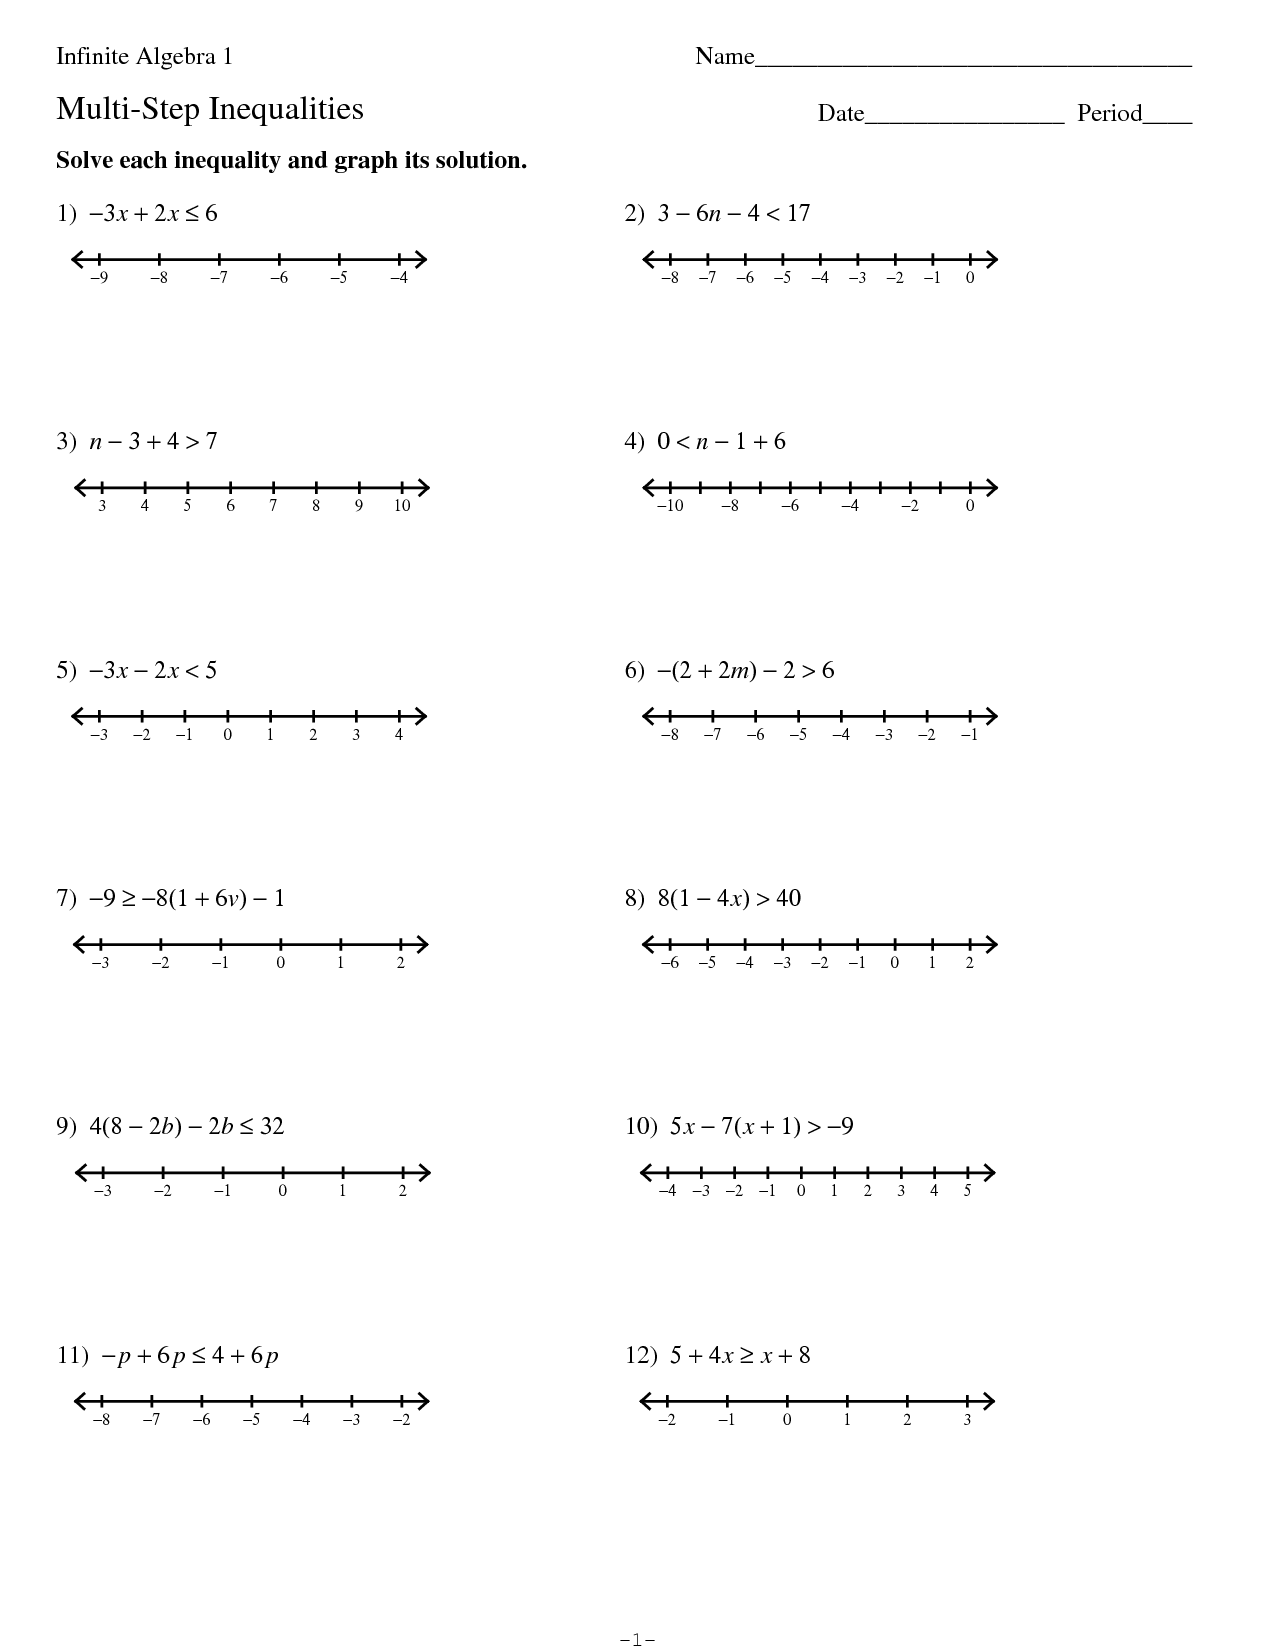 16 Best Images Of Infinite Algebra 1 Worksheets